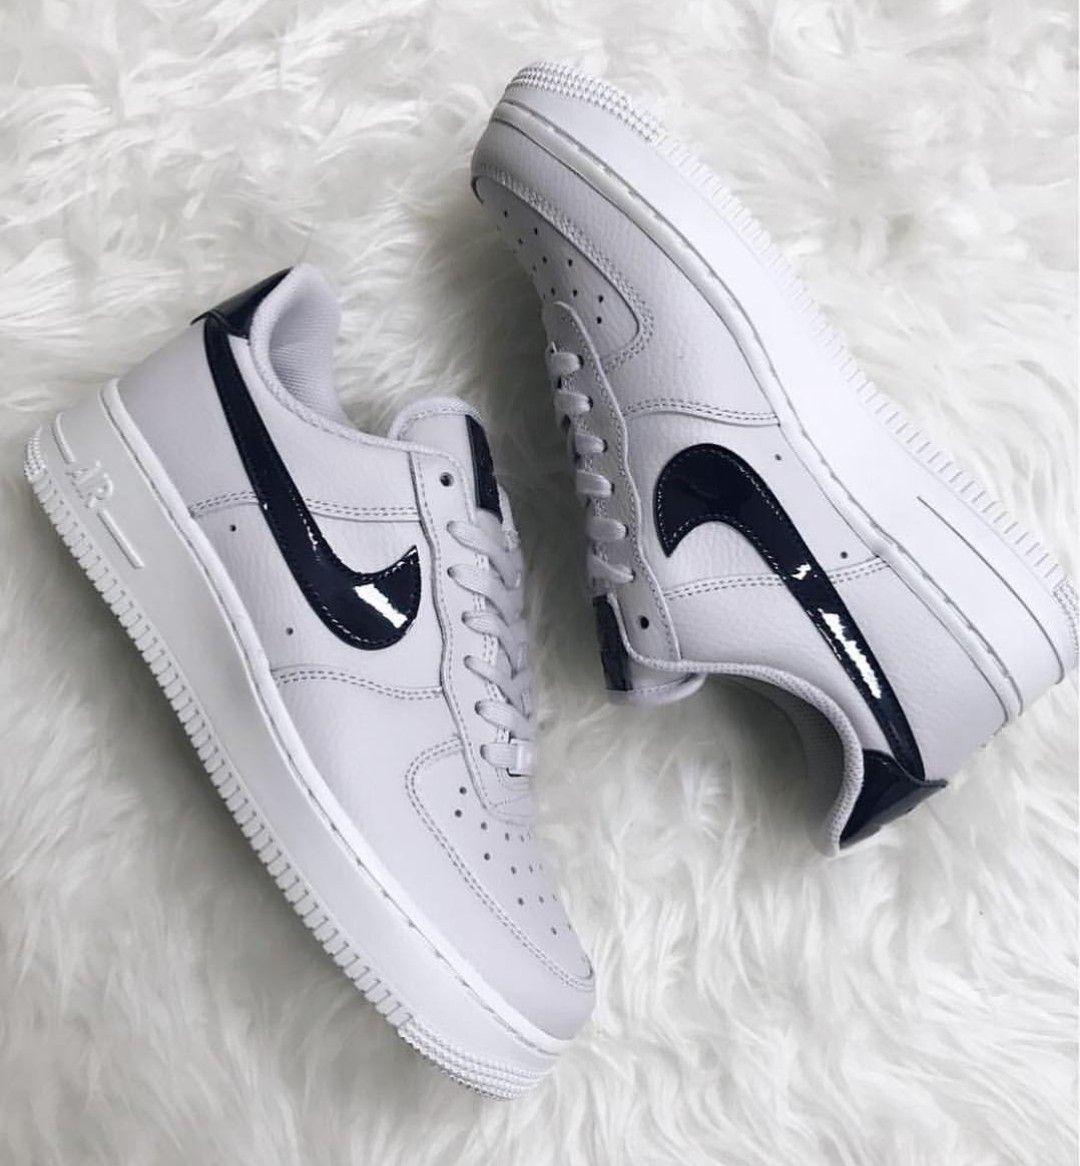 cbb7aac64ec2a Nike air force 1 vast grey obsidian